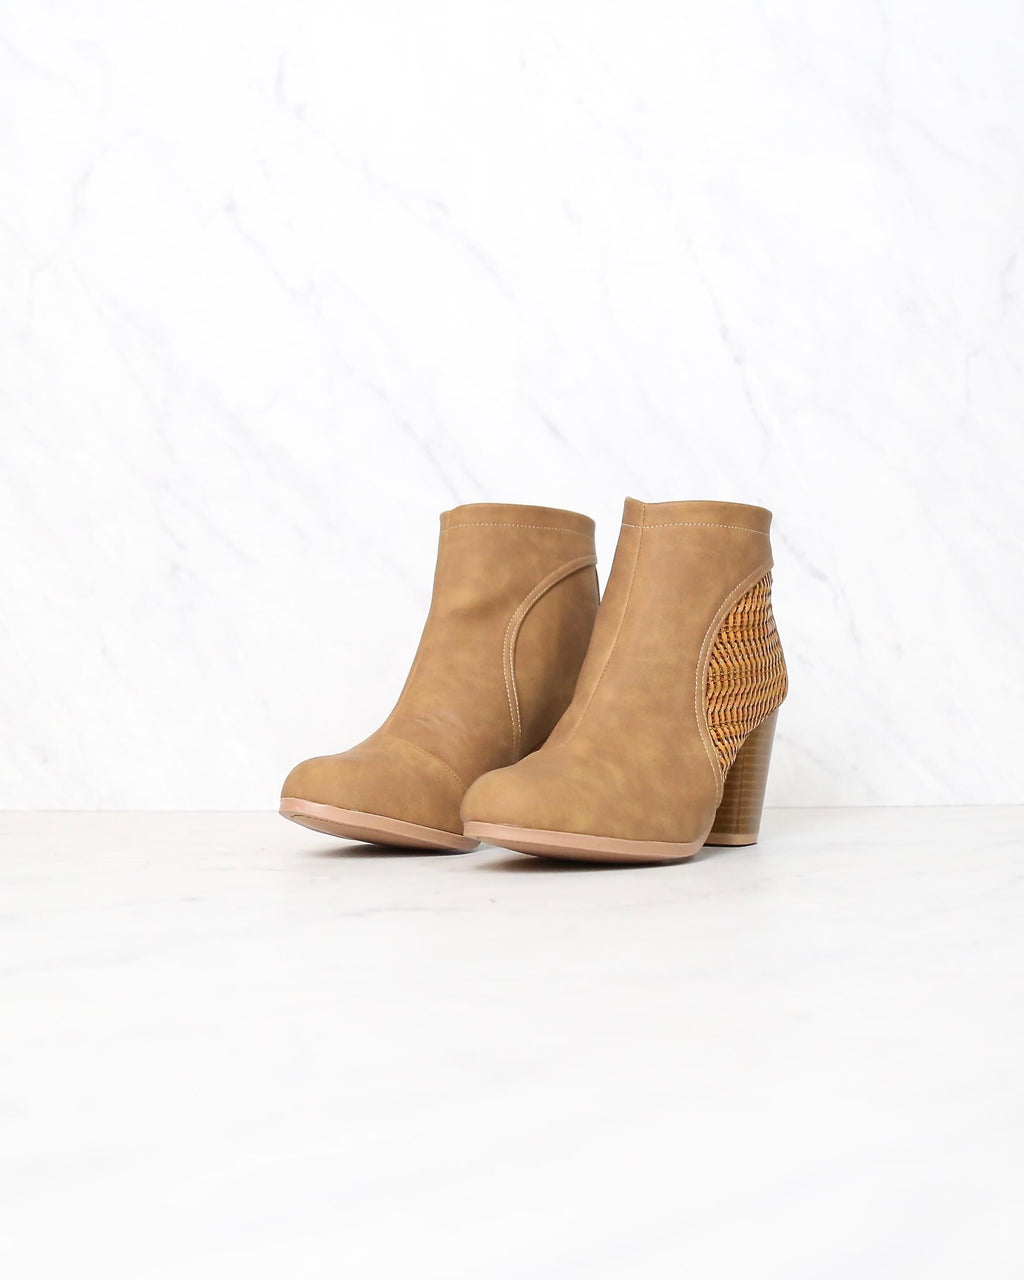 FINAL SALE - Faux Suedette Perforated Woven Bootie in Camel